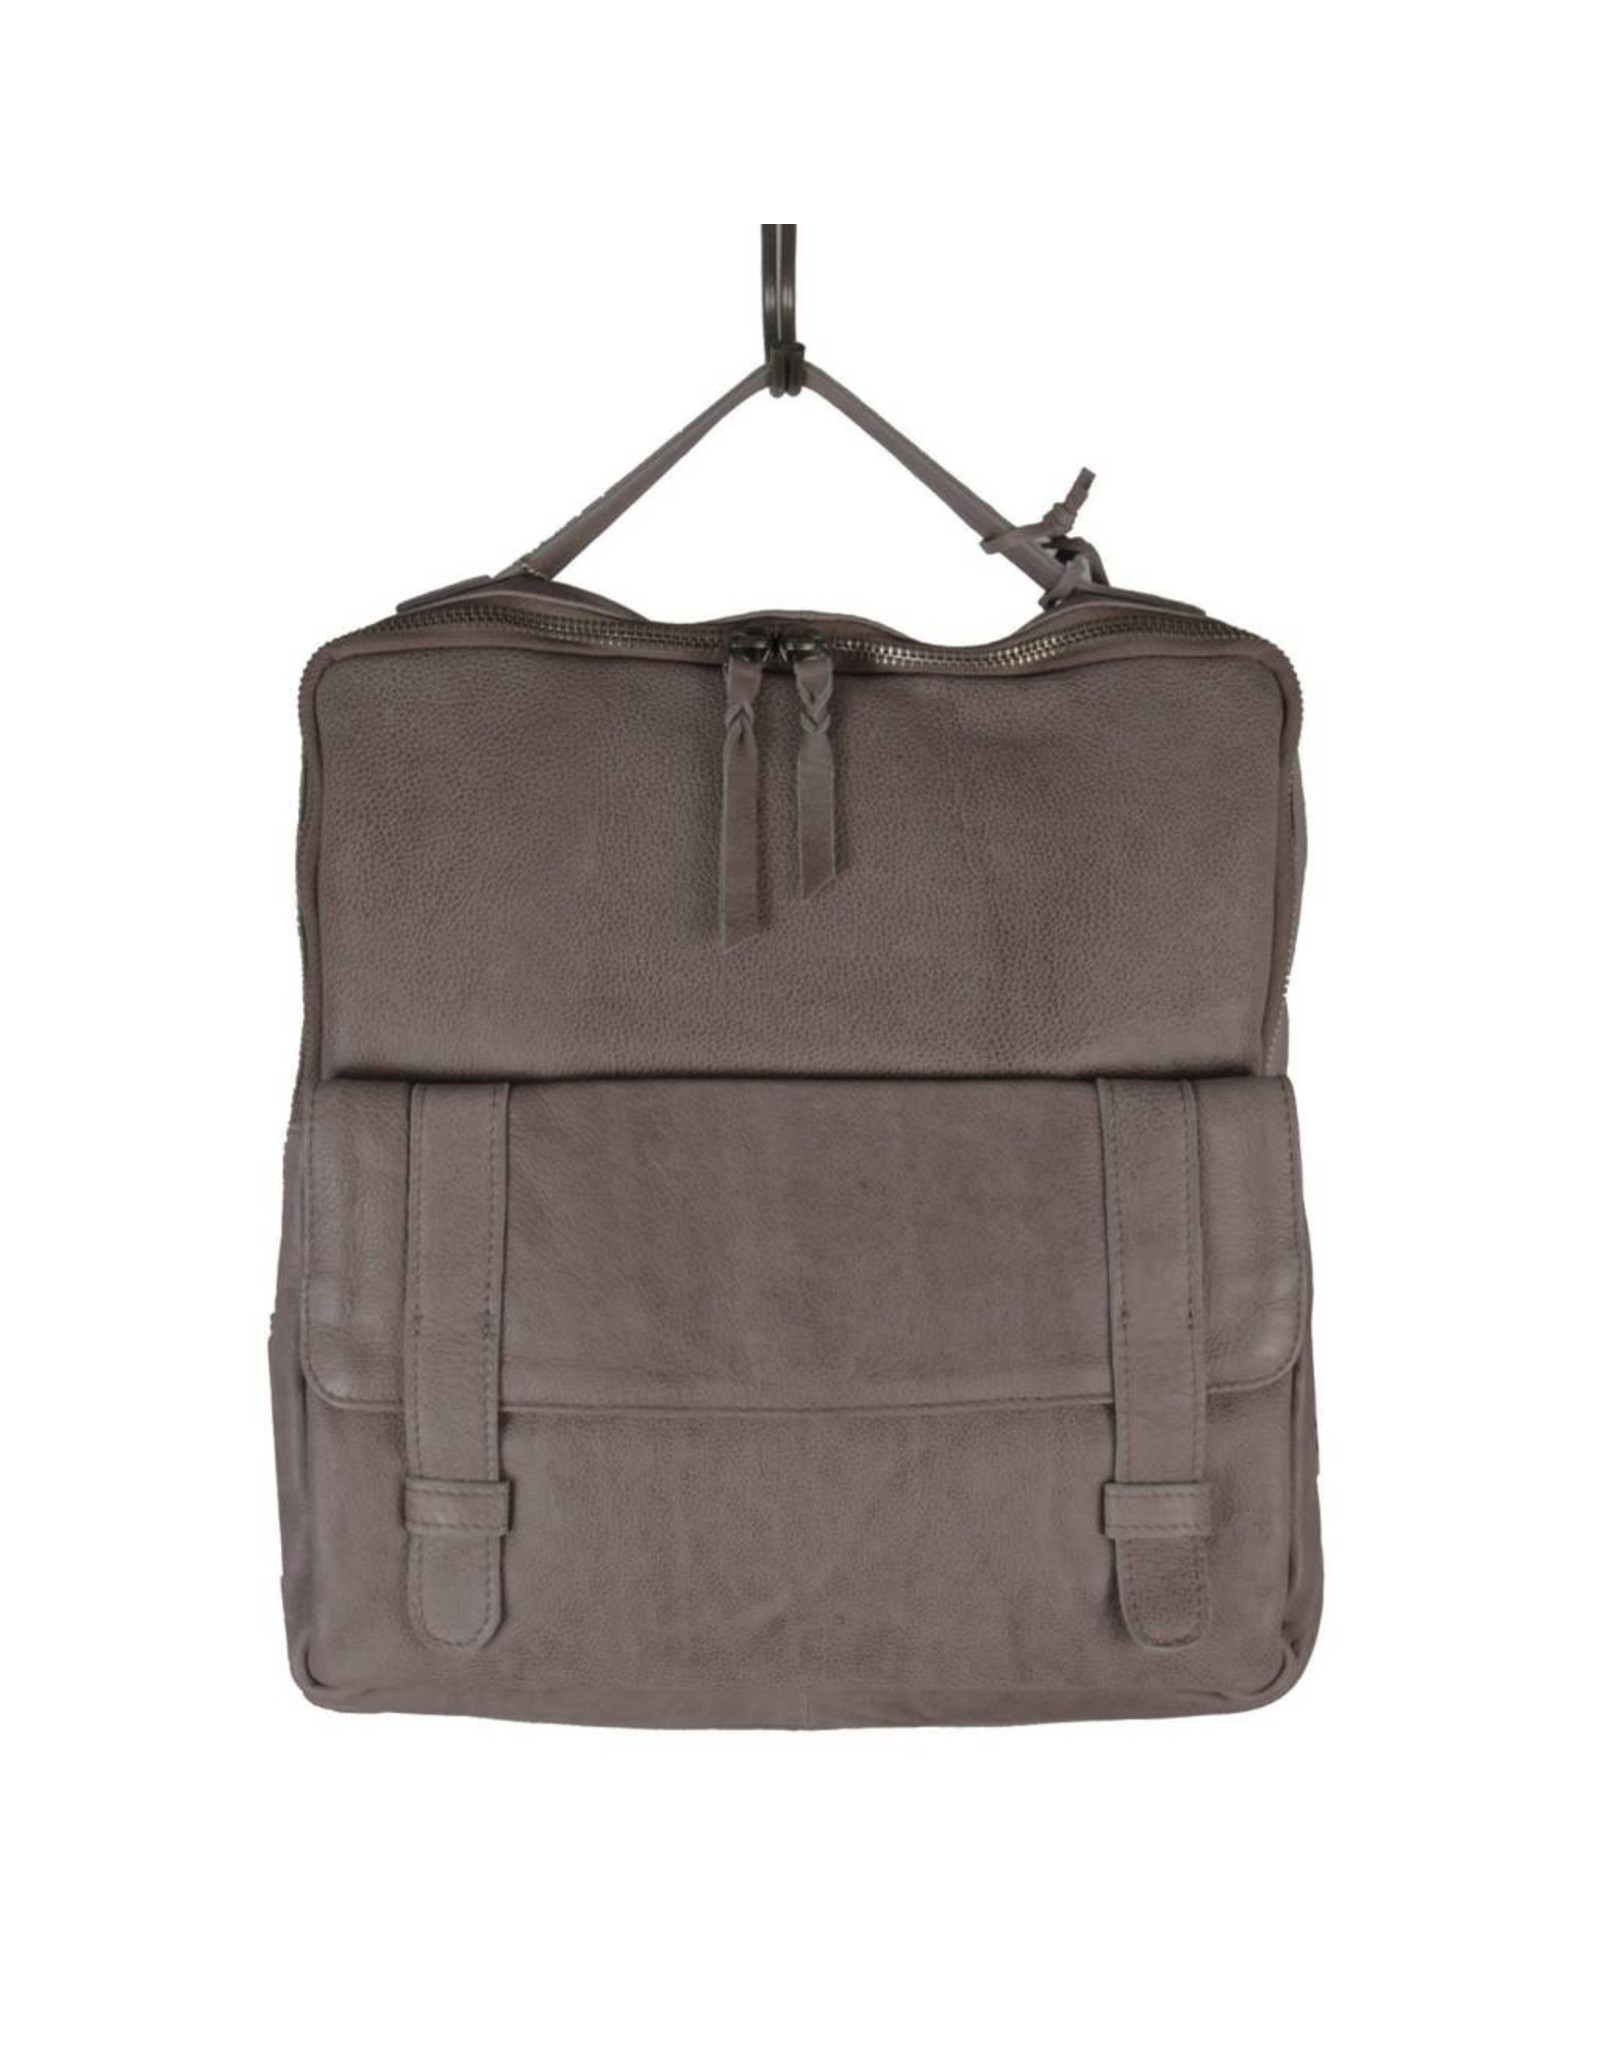 Latico Leathers Hester Backpack in Charcoal